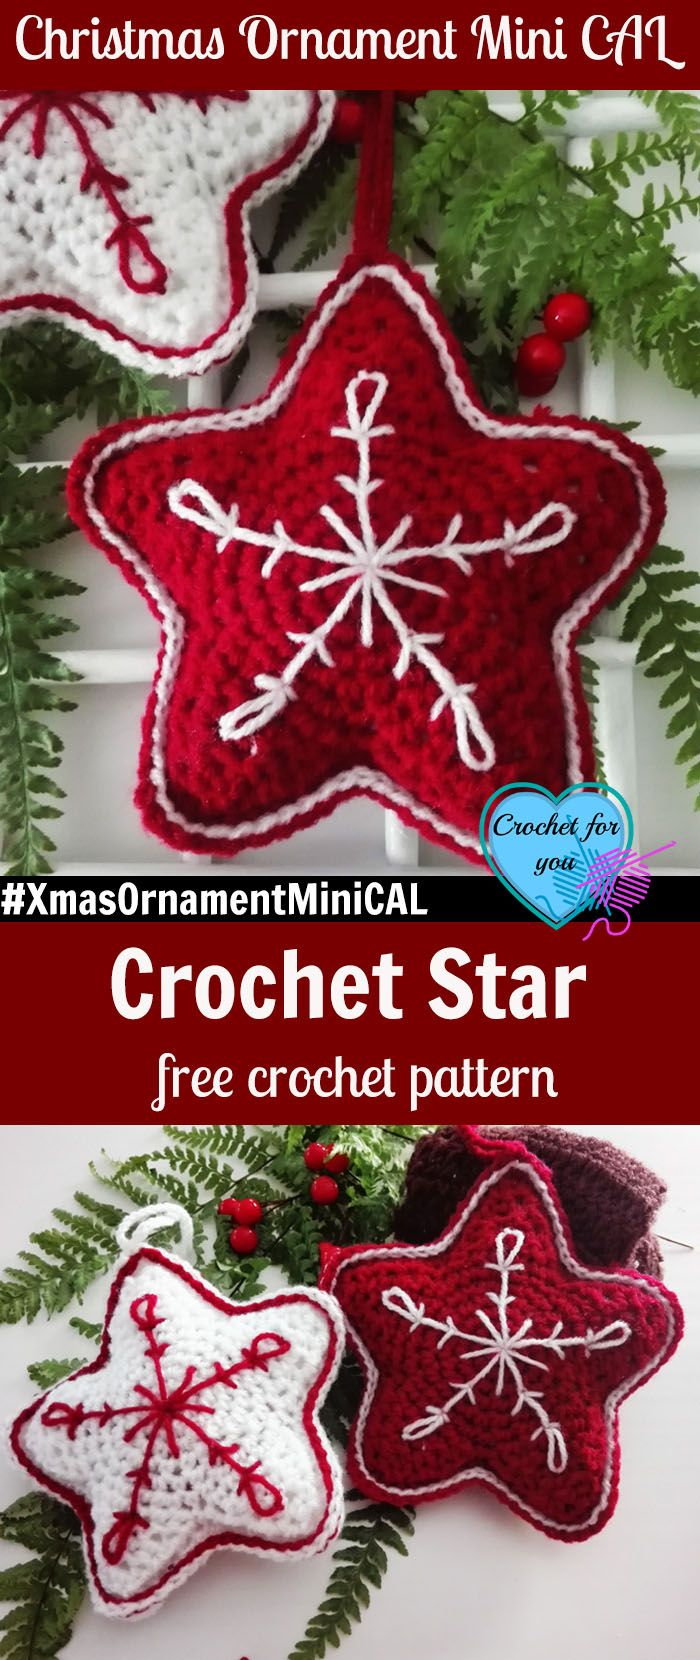 Crochet Stars Christmas Ornament Free Pattern Christmas Crochet Patterns Crochet Christmas Decorations Crochet Xmas